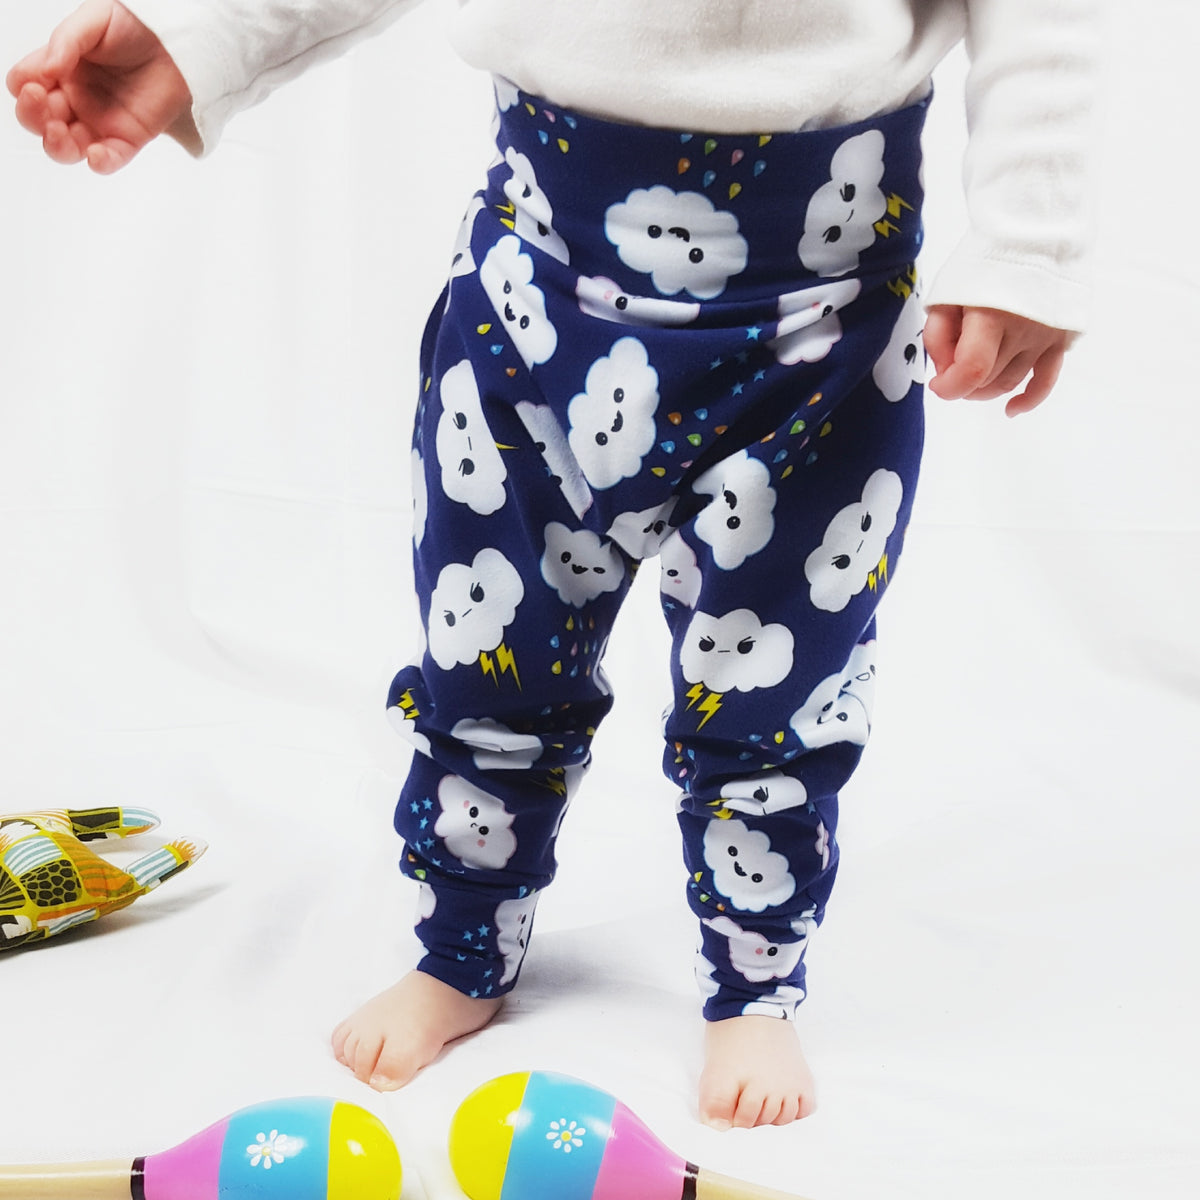 Bright & Colourful Harem Leggings from Newborn to Six years